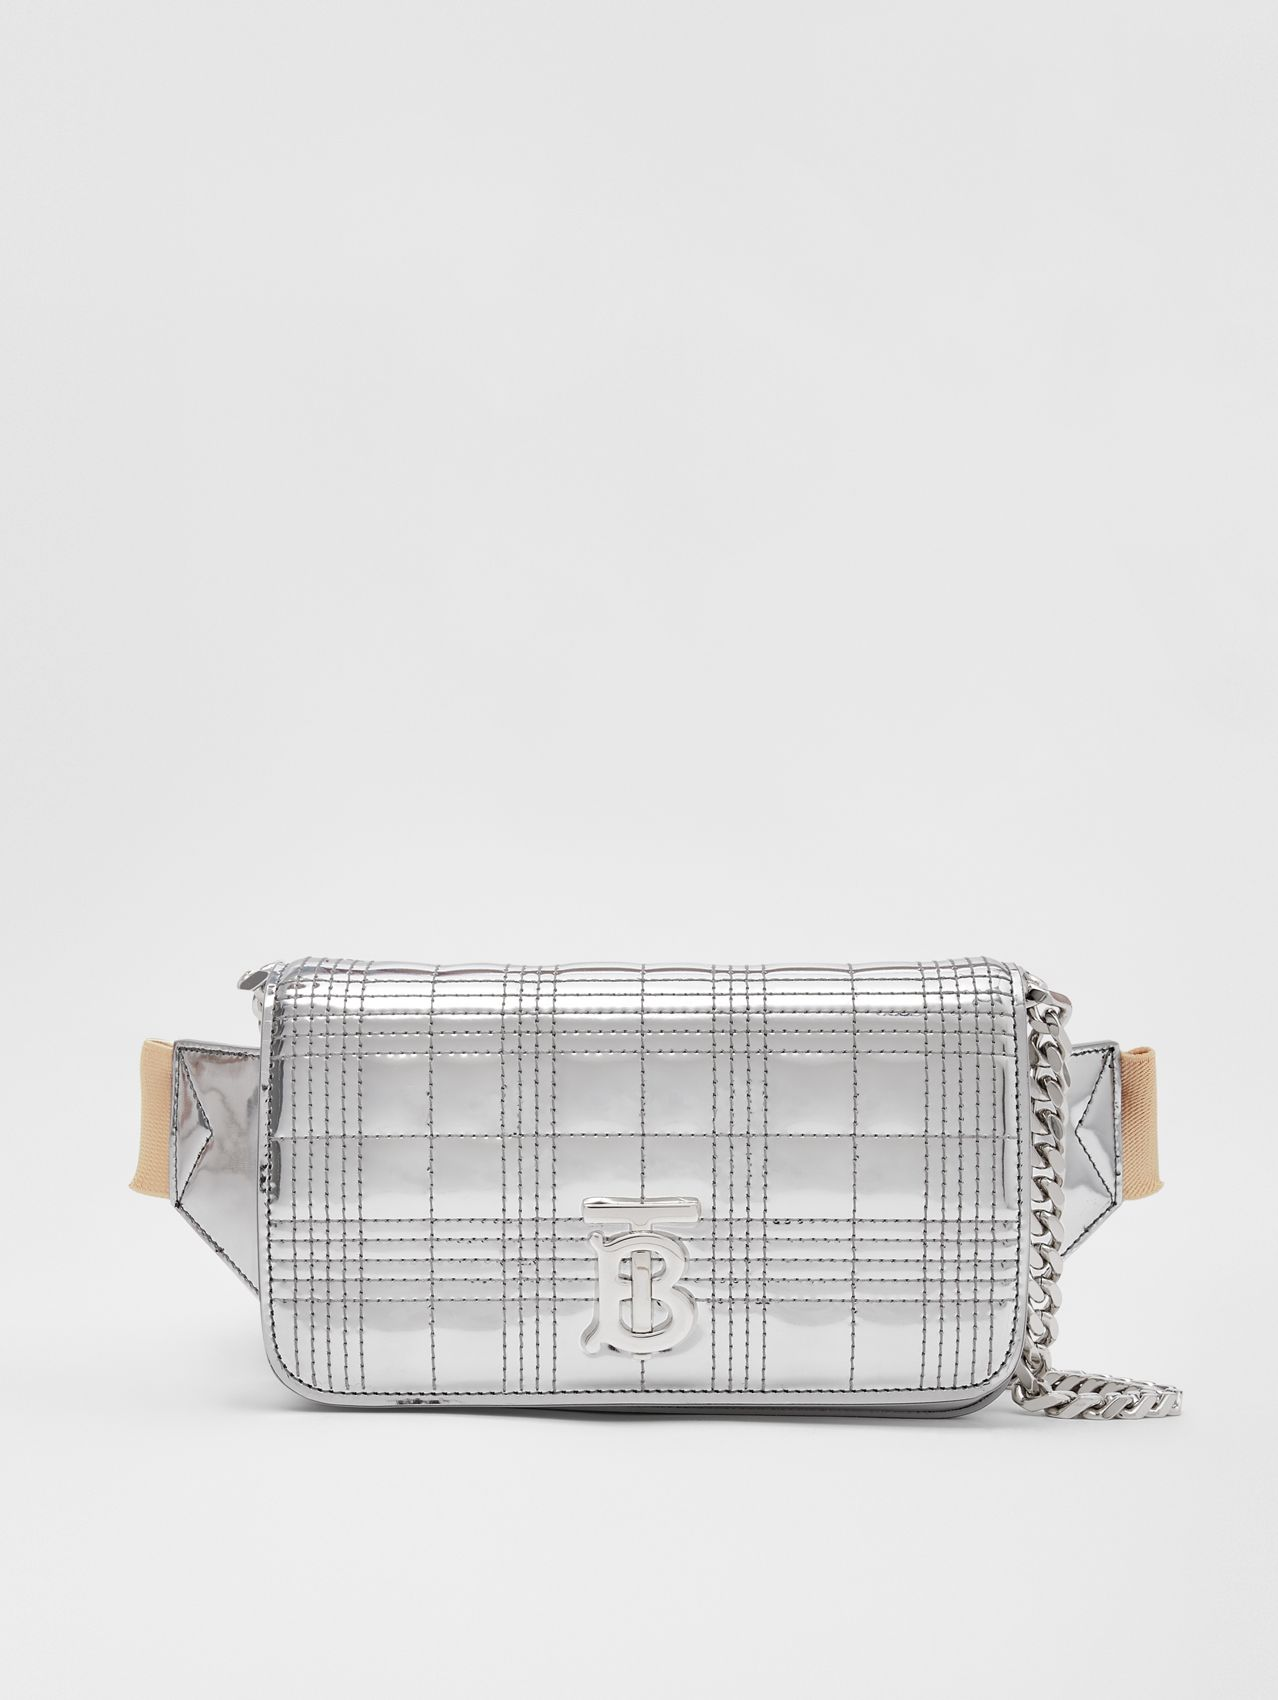 Quilted Metallic Lola Bum Bag with Chain Strap in Silver